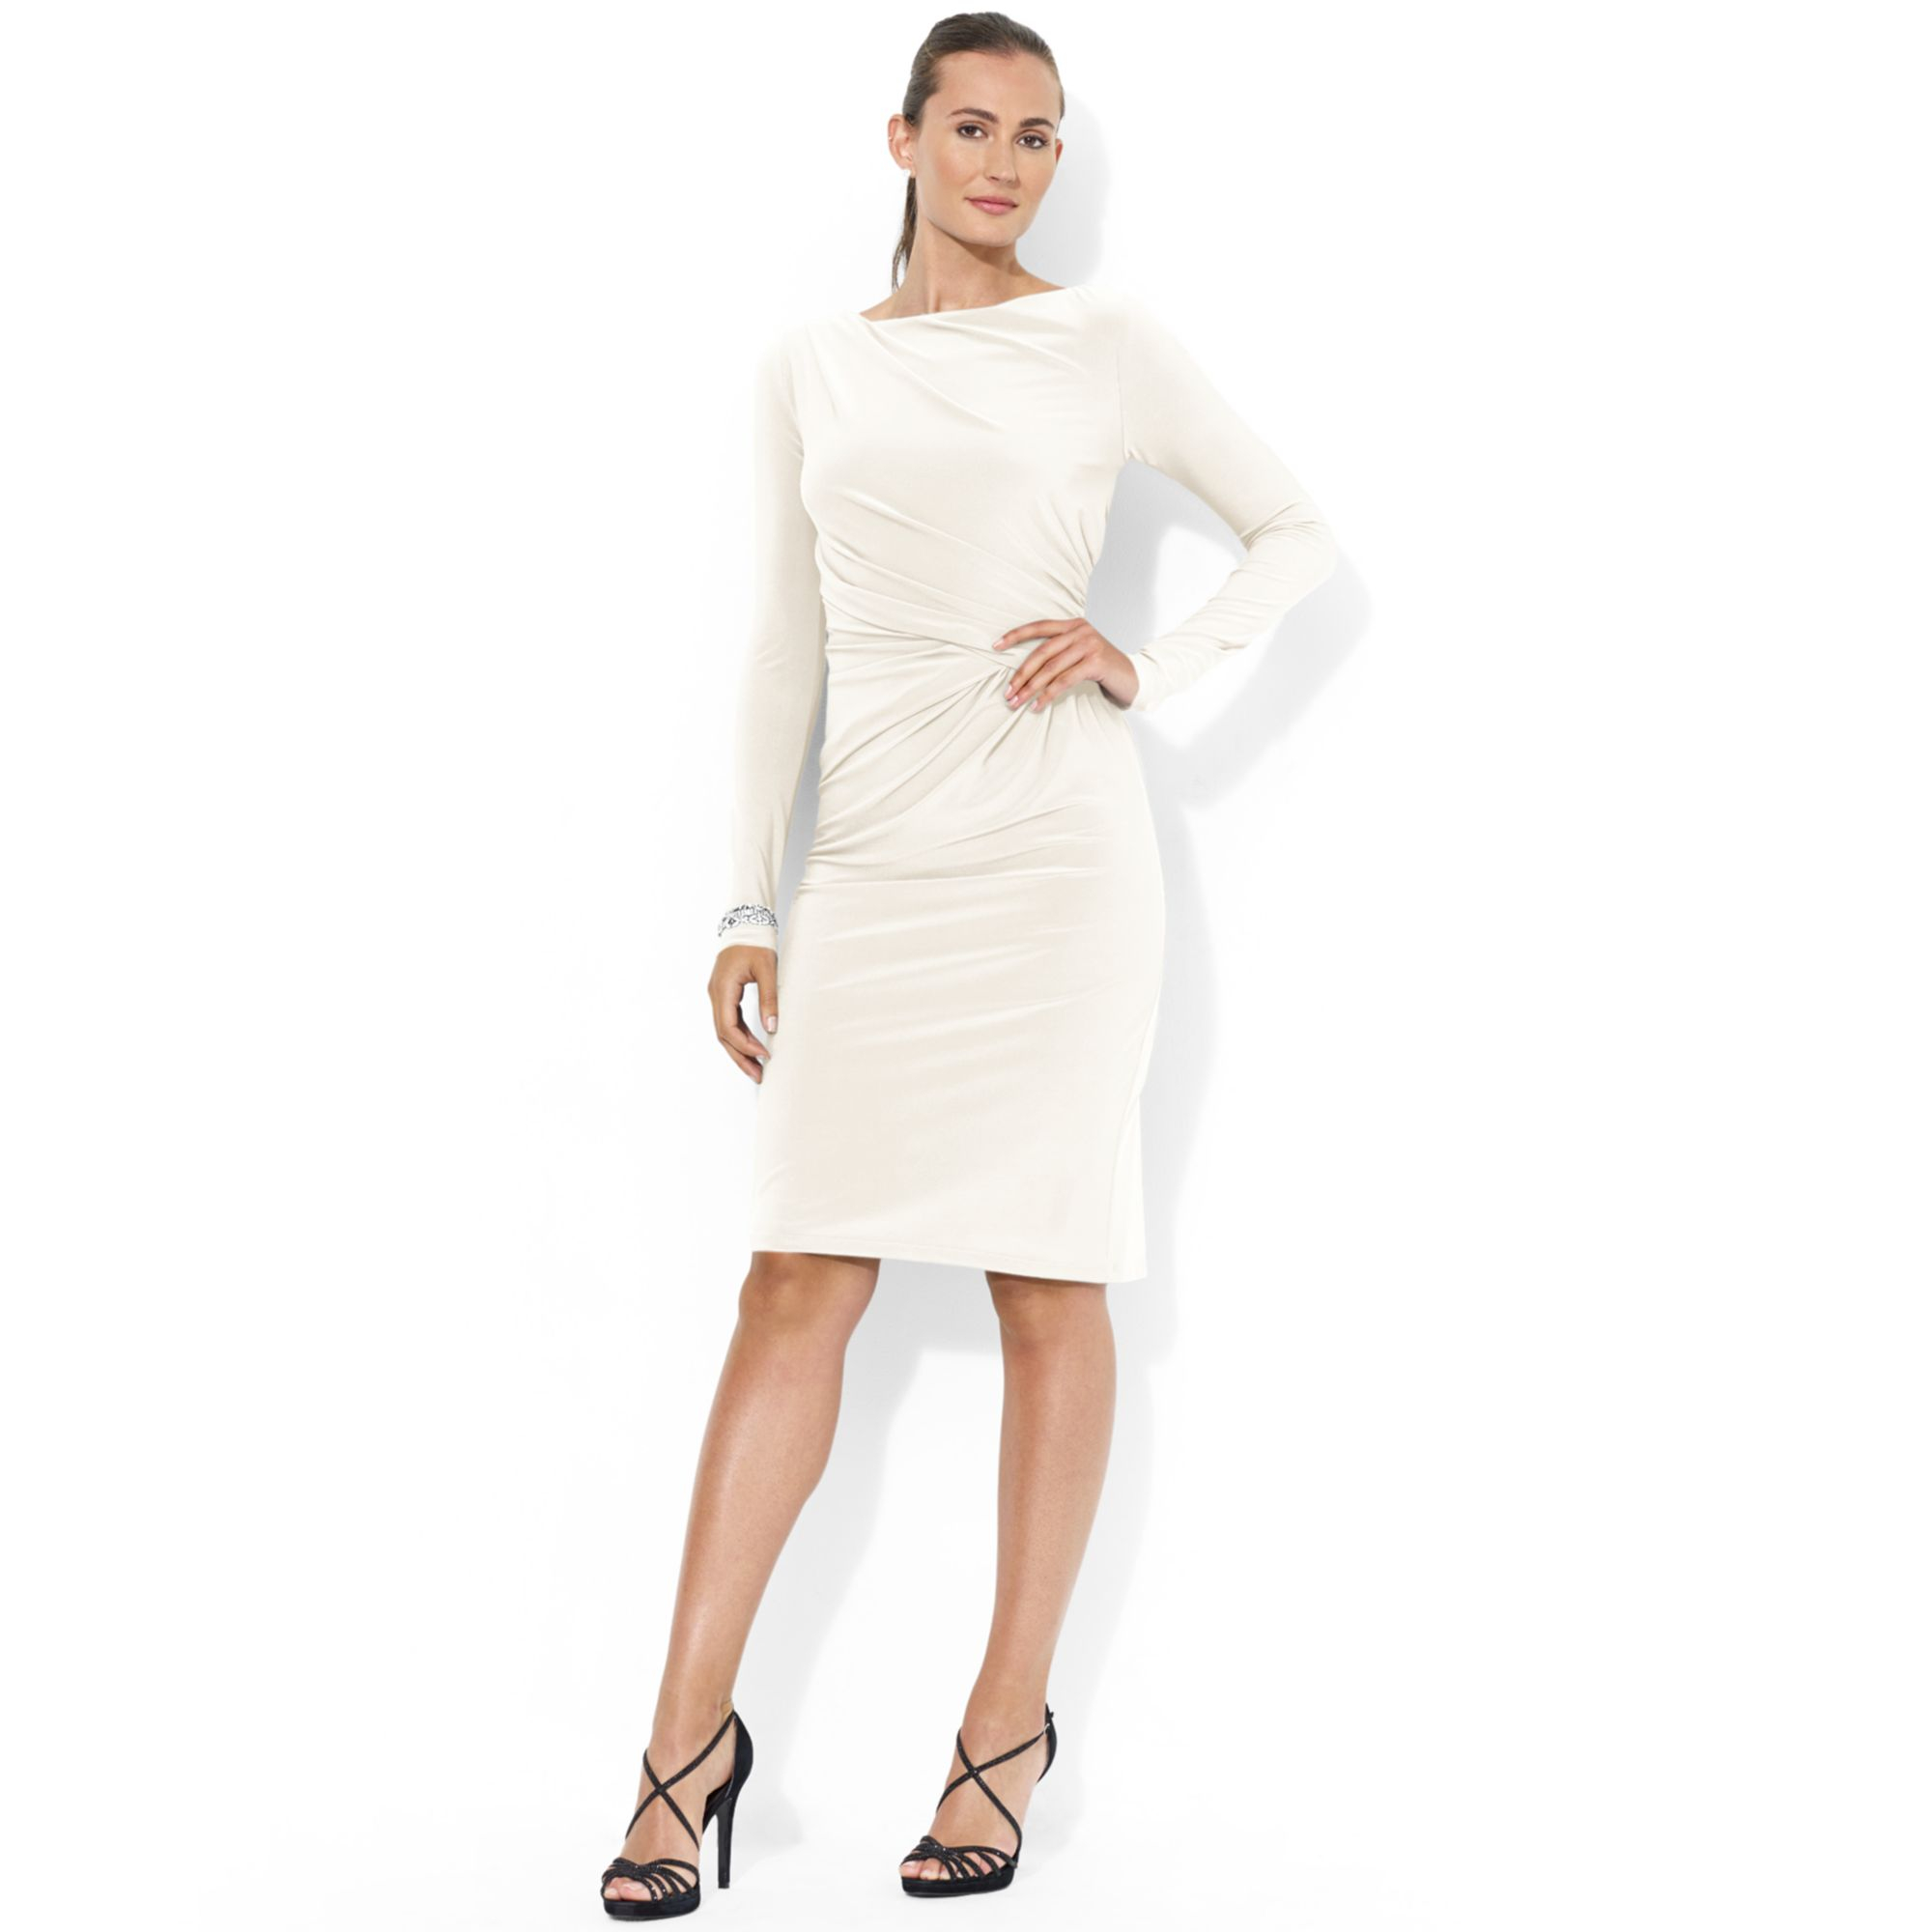 lauren by ralph lauren longsleeve ruched jersey dress in white lyst. Black Bedroom Furniture Sets. Home Design Ideas